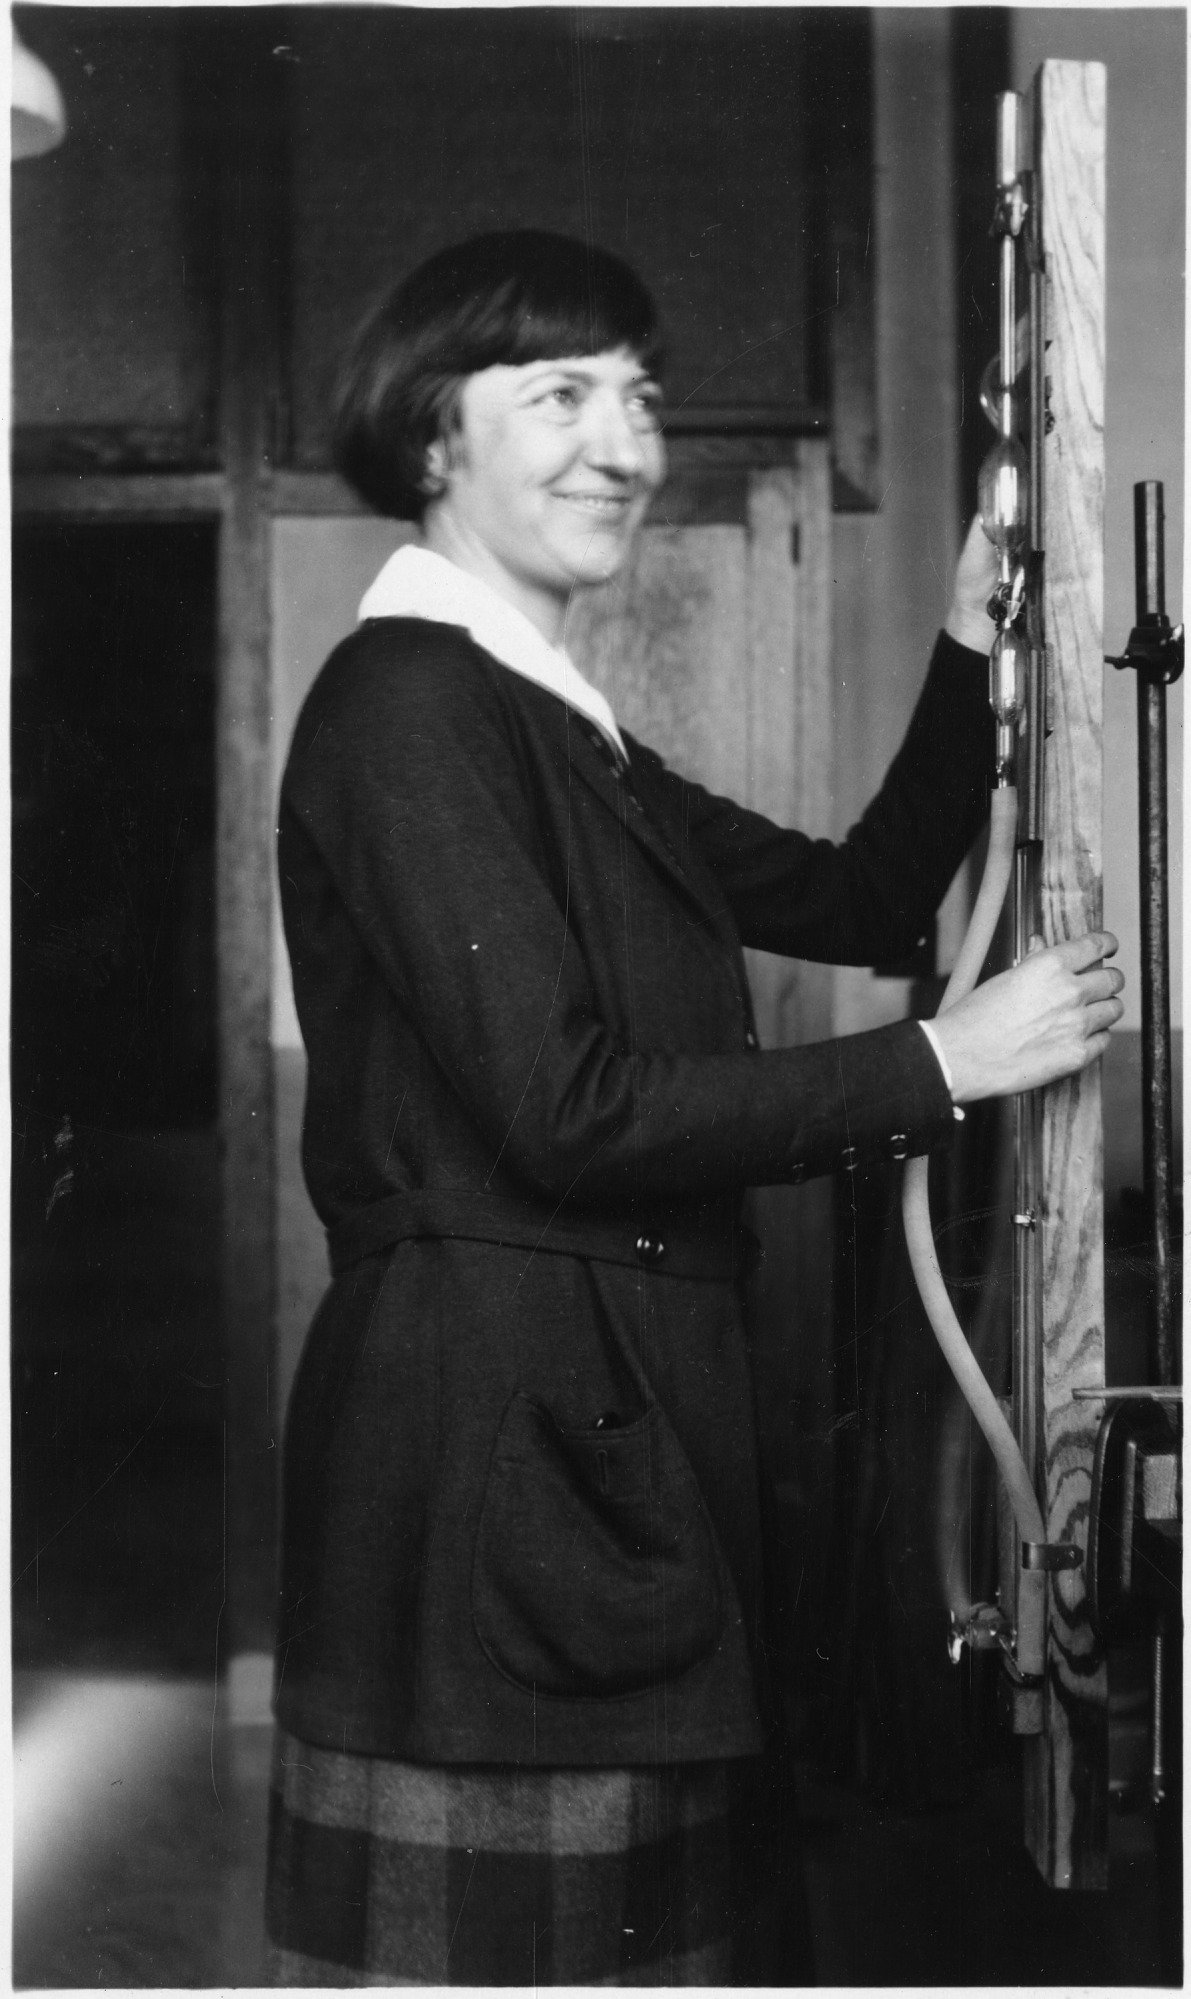 Ethel Ronzoni Bishop (1892-1975), Smithsonian Institution Archives, SIA Acc. 90-105 [SIA2009-2445].